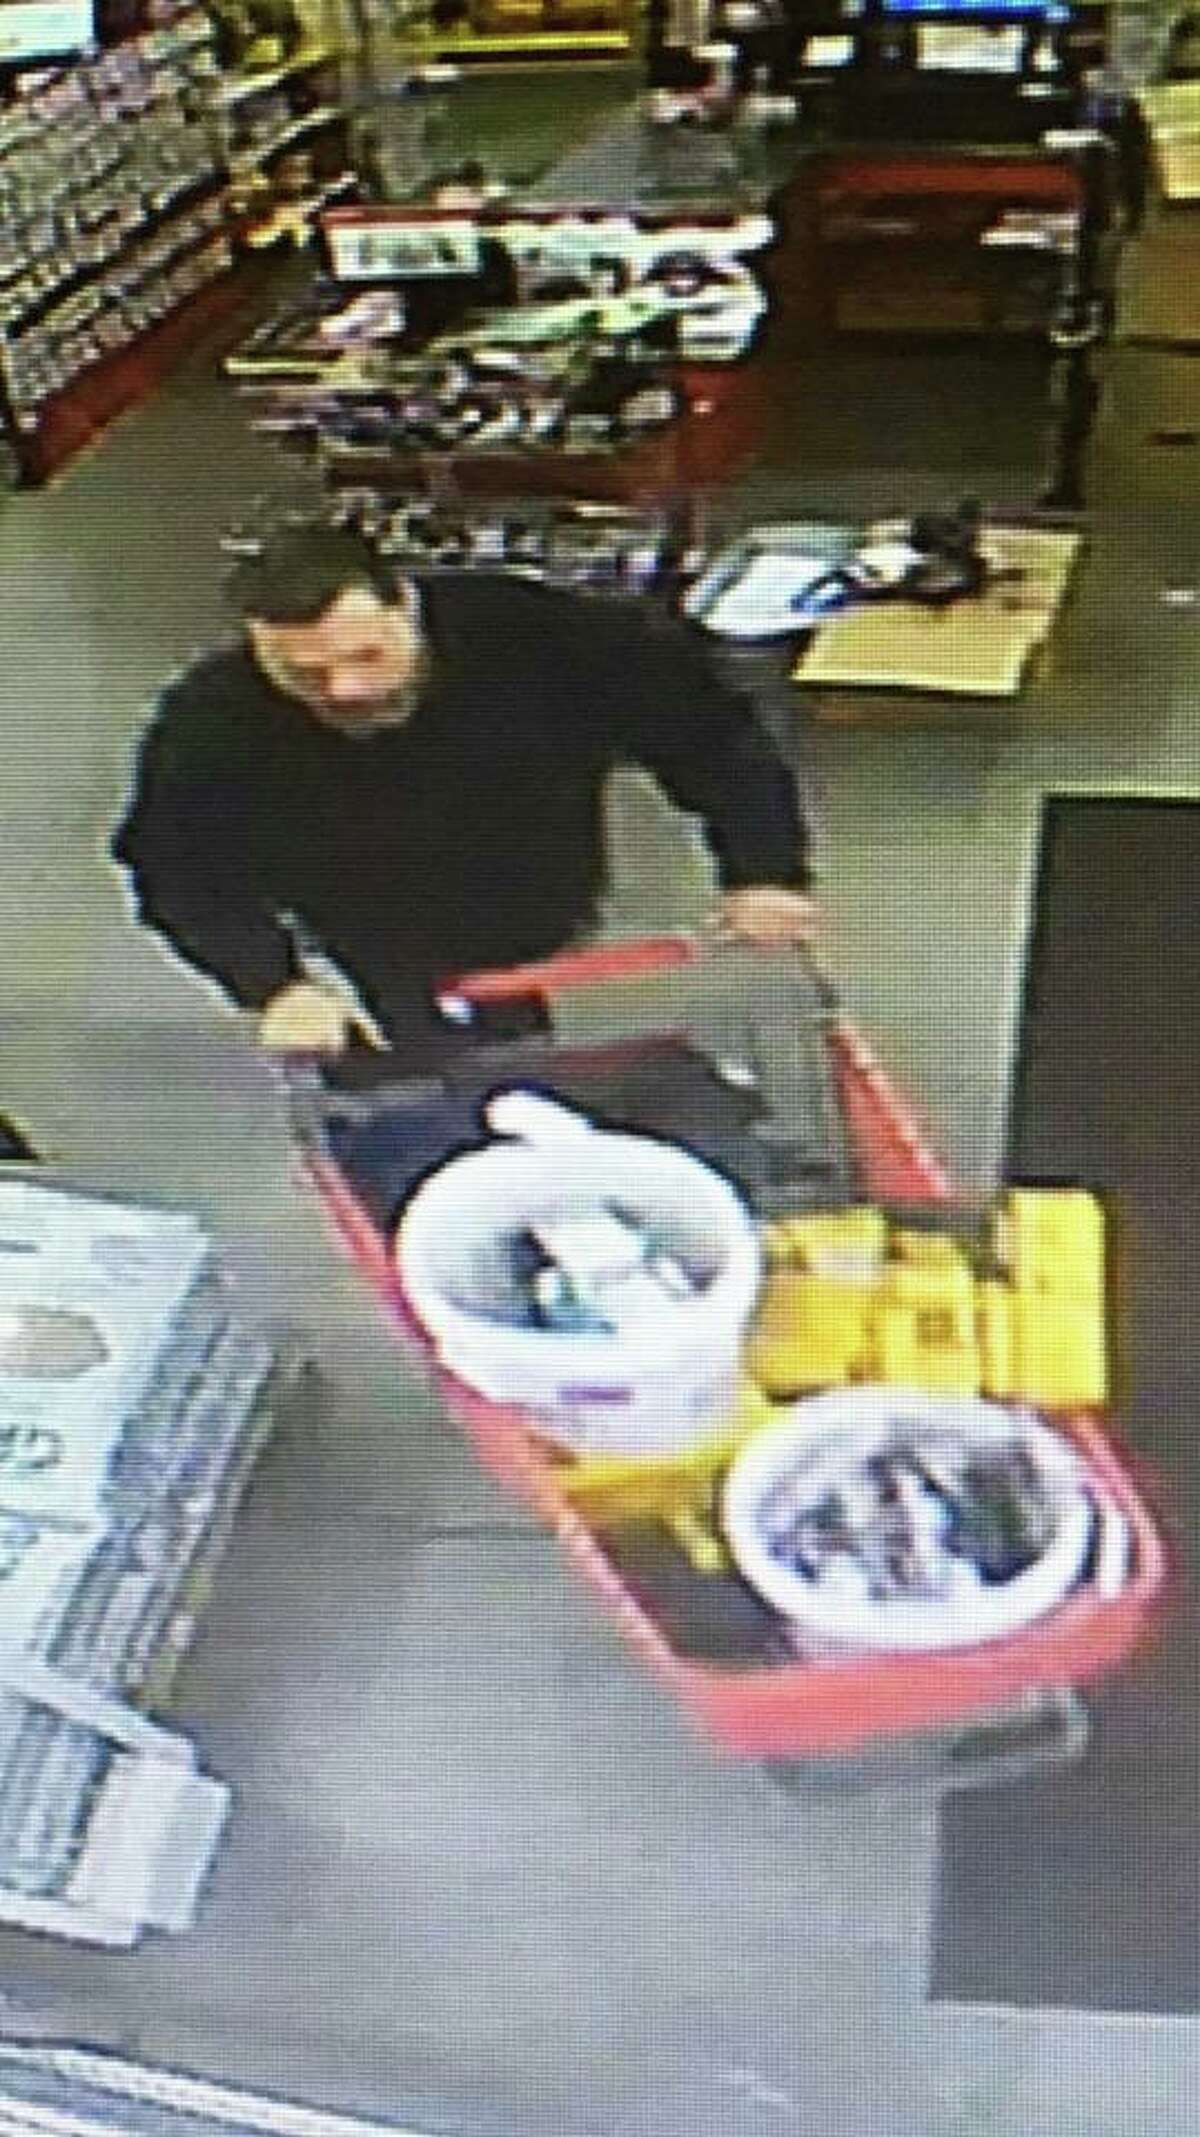 Guilford Police are seeking to identify the man in this photo, believed to have taken tools from an area hardware store on Oct. 20, 2019.